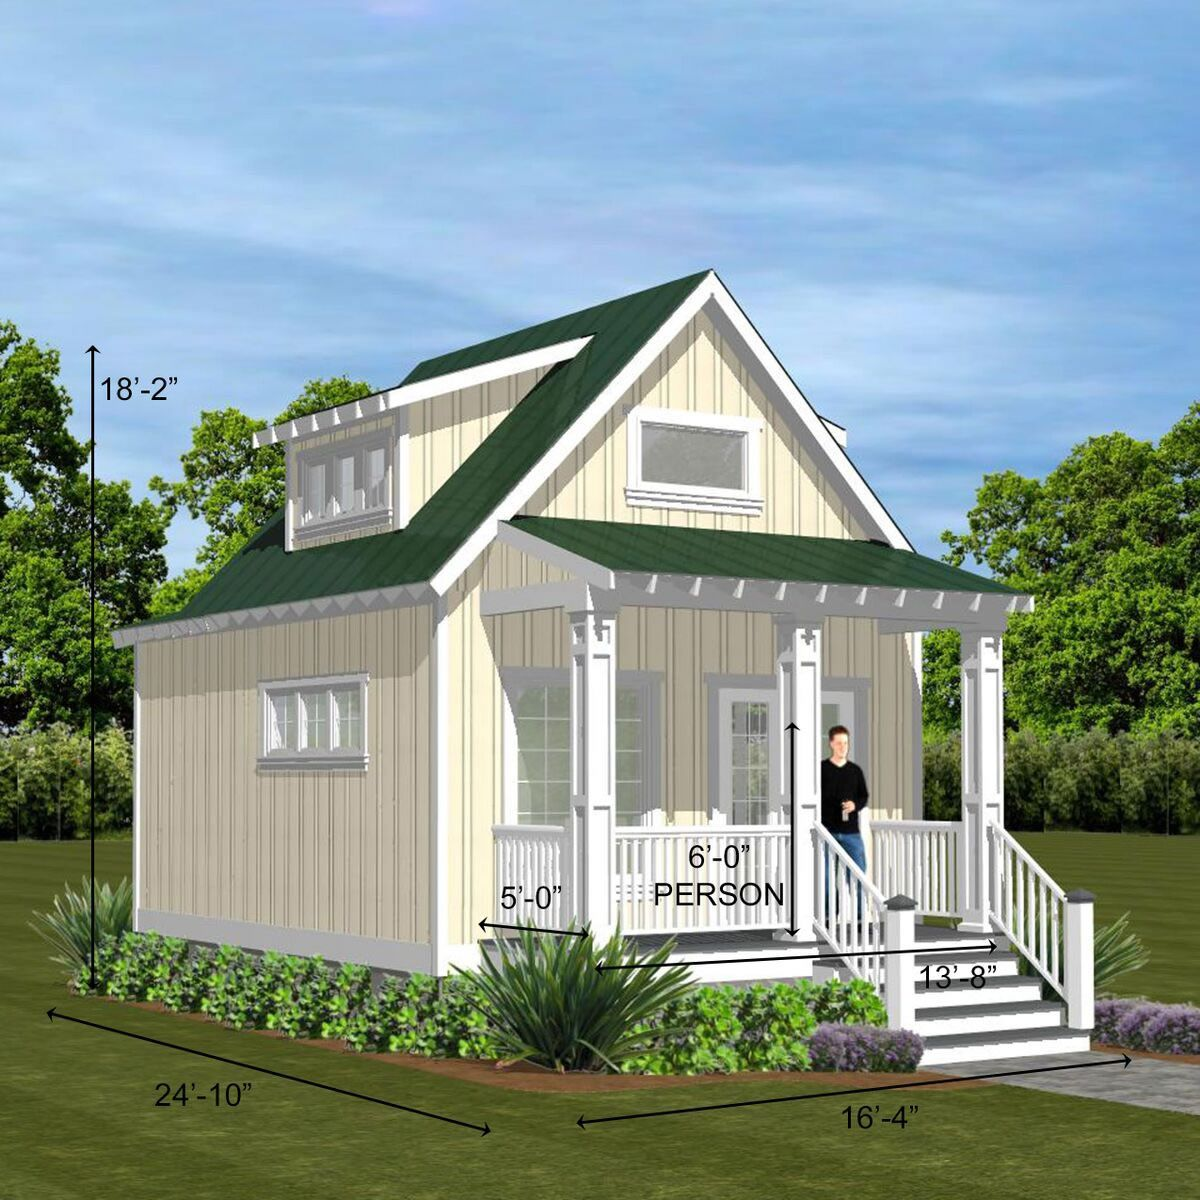 Tiny Home Designs: Tiny House Living, Small